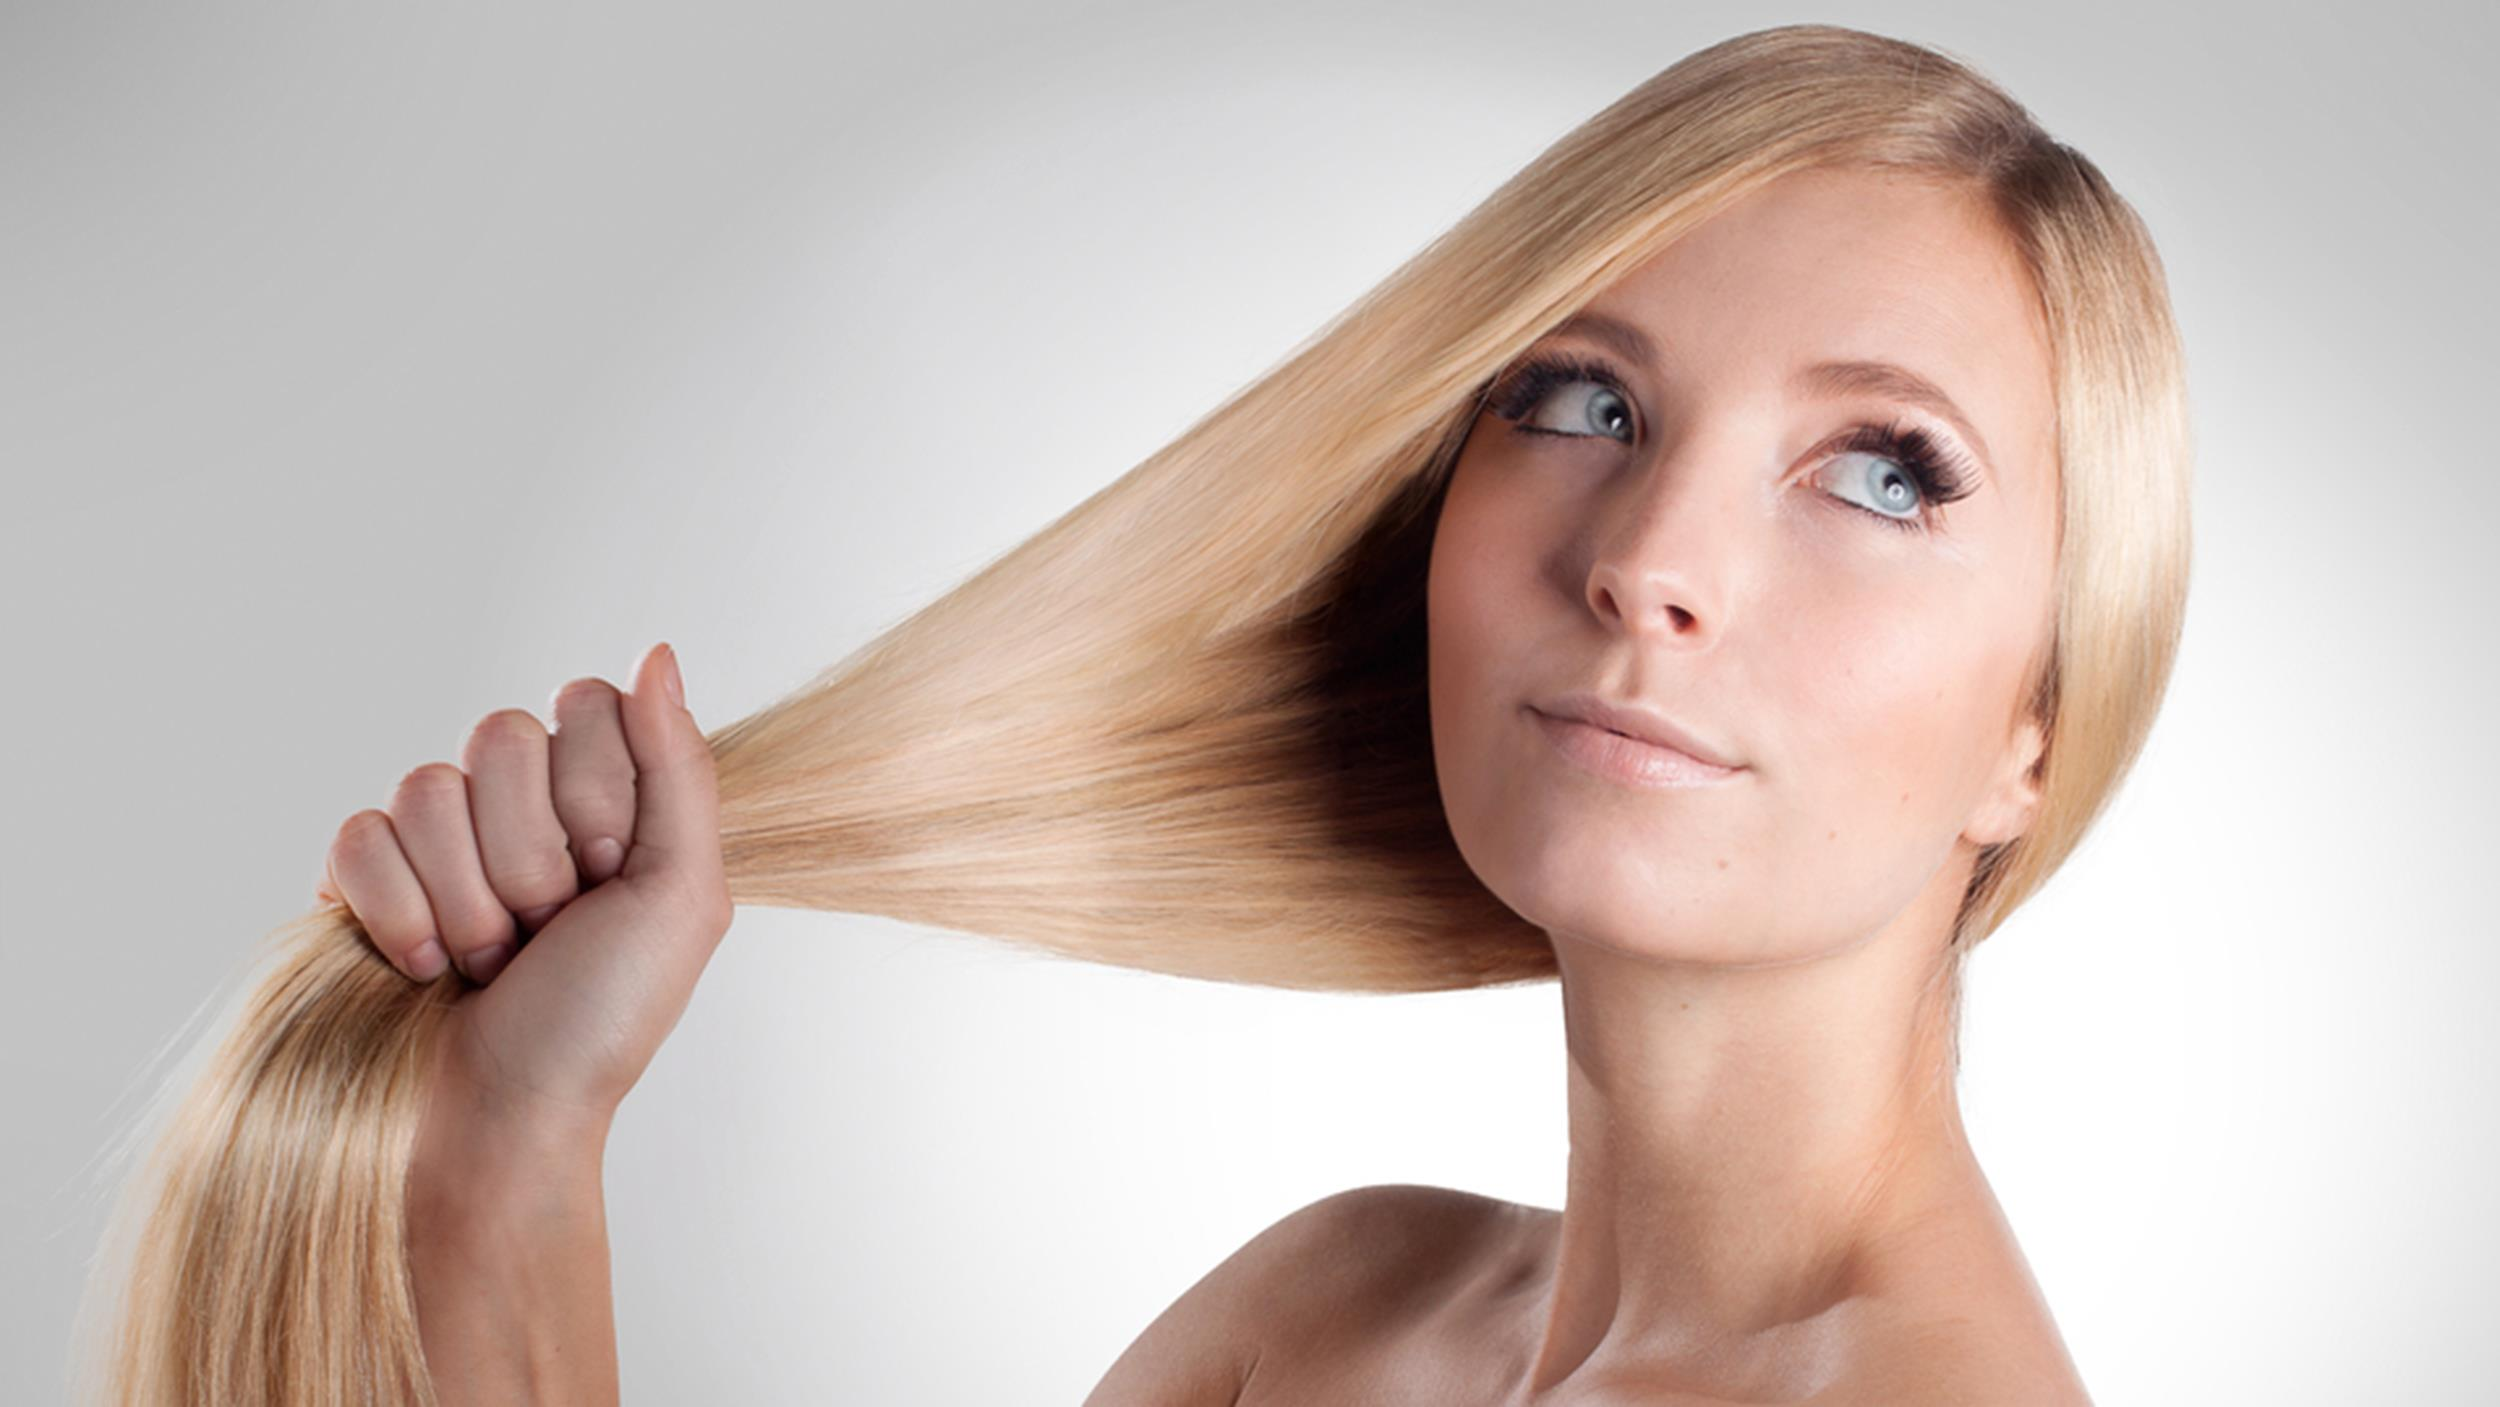 Healthy Hair Styles: For Healthy, Shiny Hair